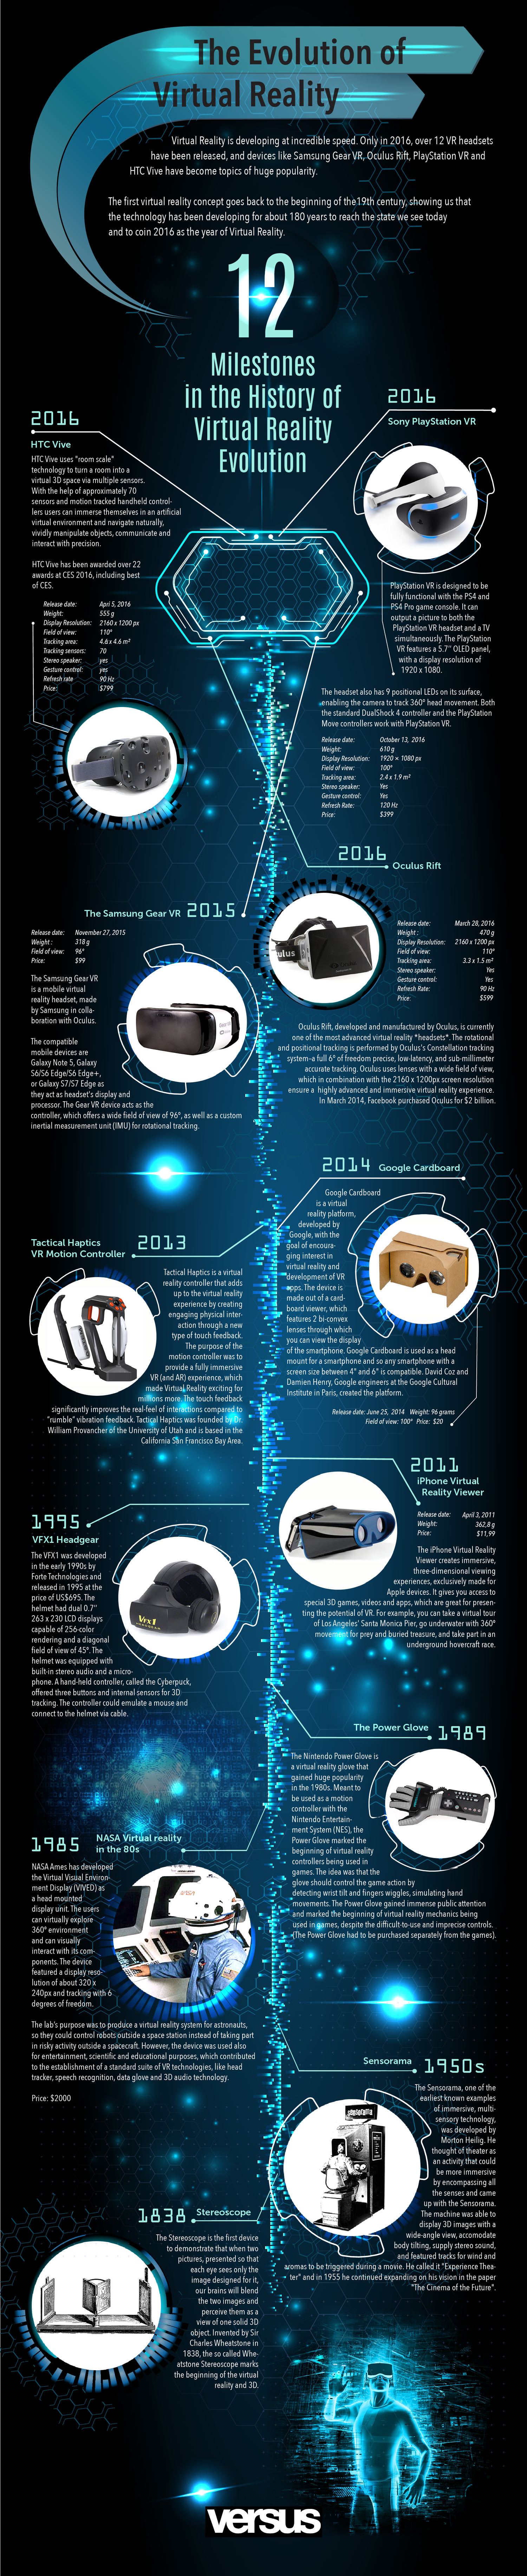 The Evolution Of Virtual-Reality And Its Milestones - Infographic